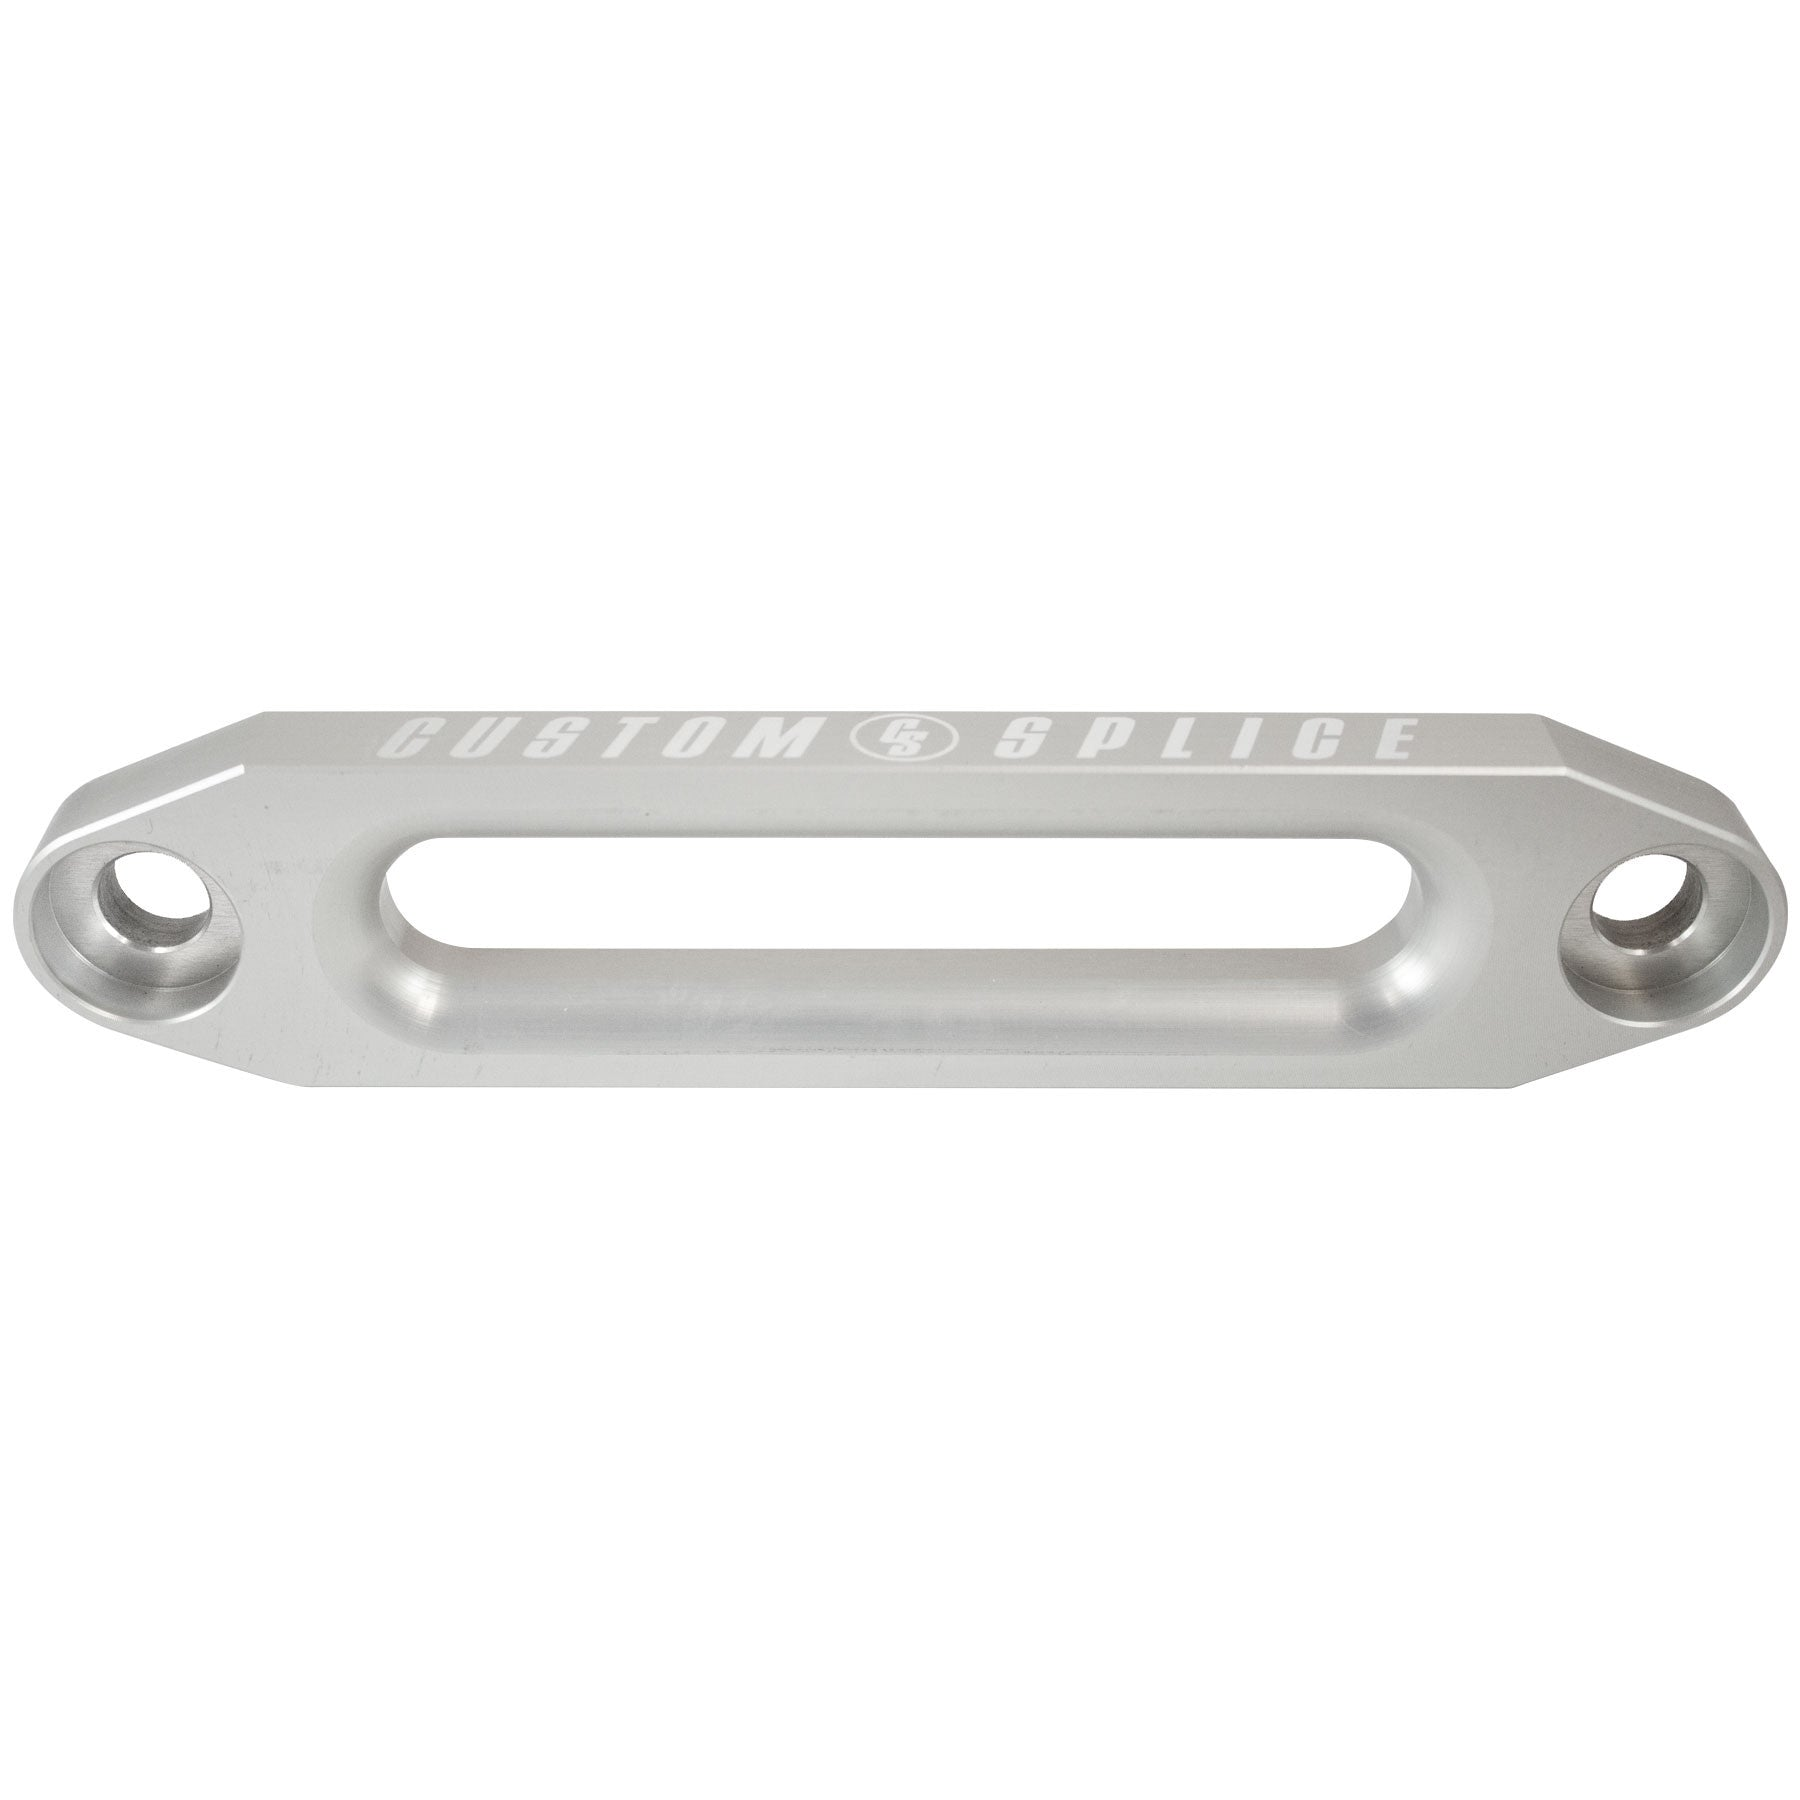 "6"" SlimLine Fairlead for SxS"